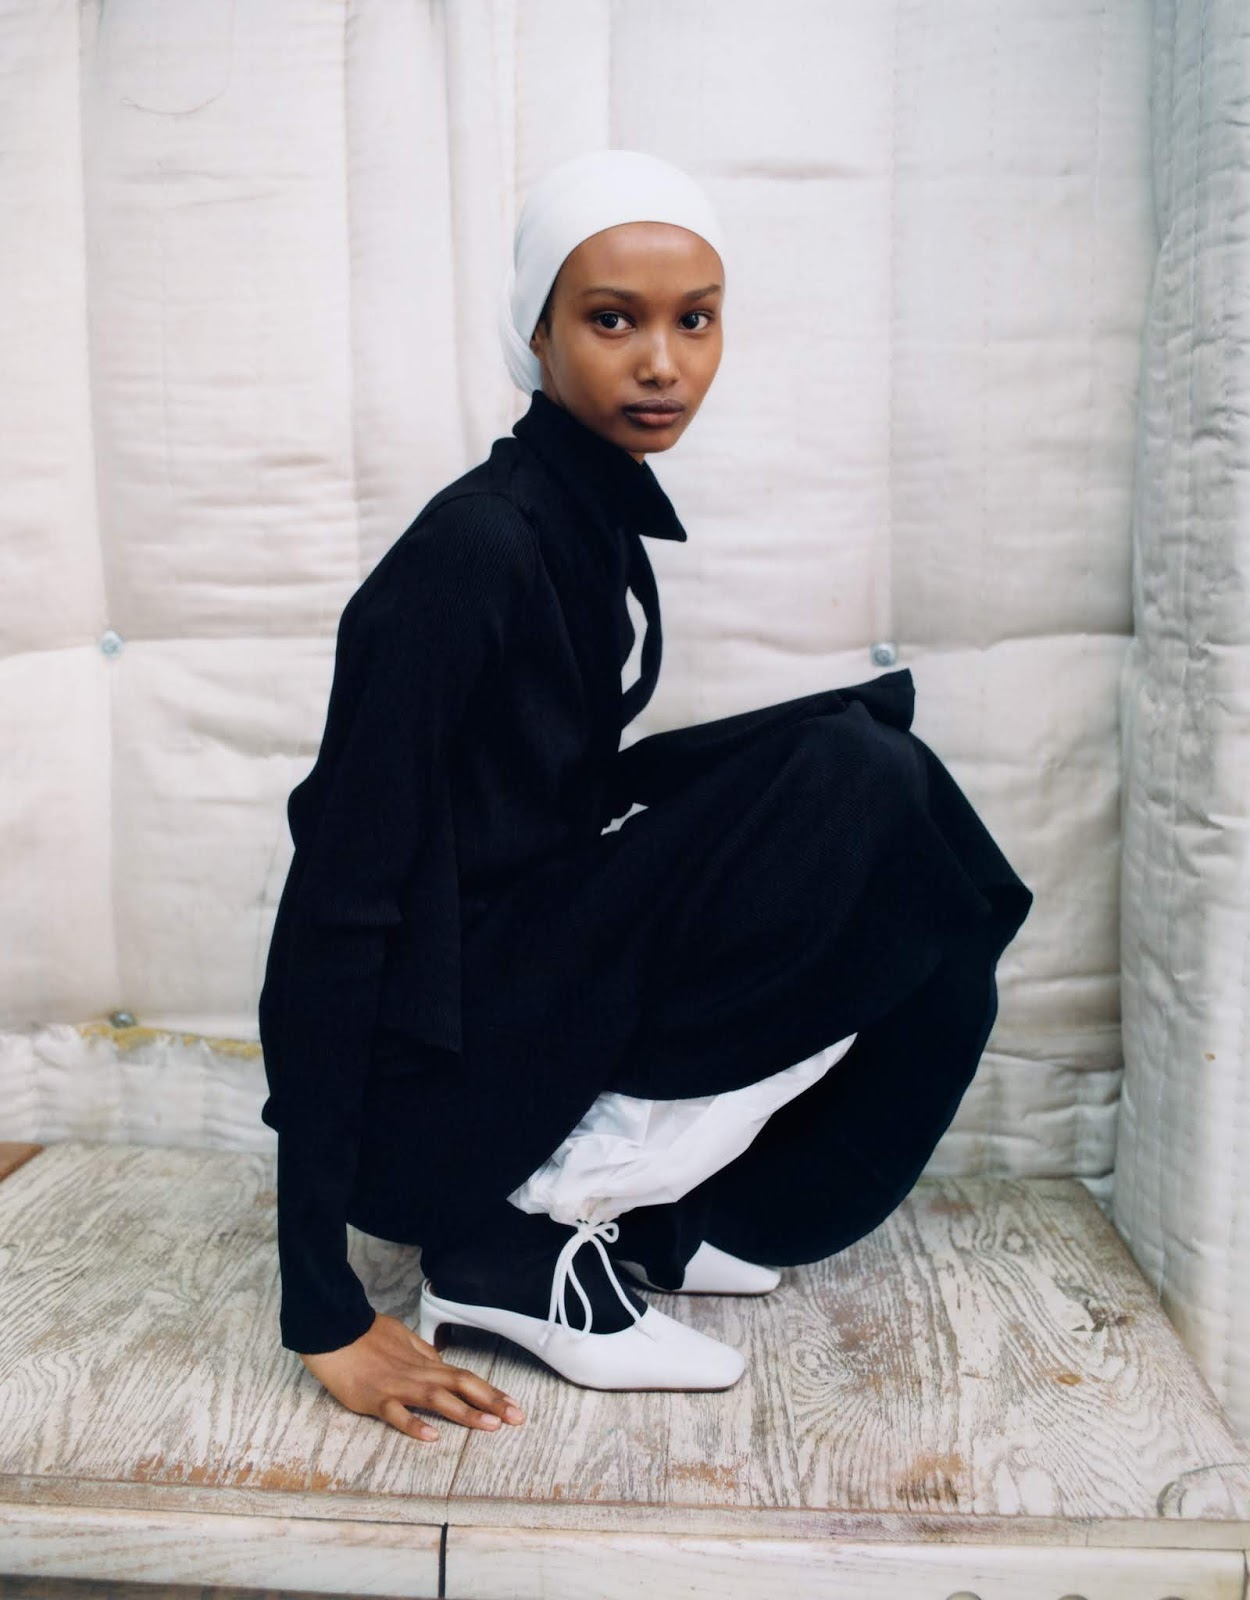 Ugbad Abdi by Zoe Ghertner. Dress Christopher Kane. Trousers Kwaidan Editions. Headscarf Berwick St. Cloth Shop. Socks Falke. Shoes by FAR.